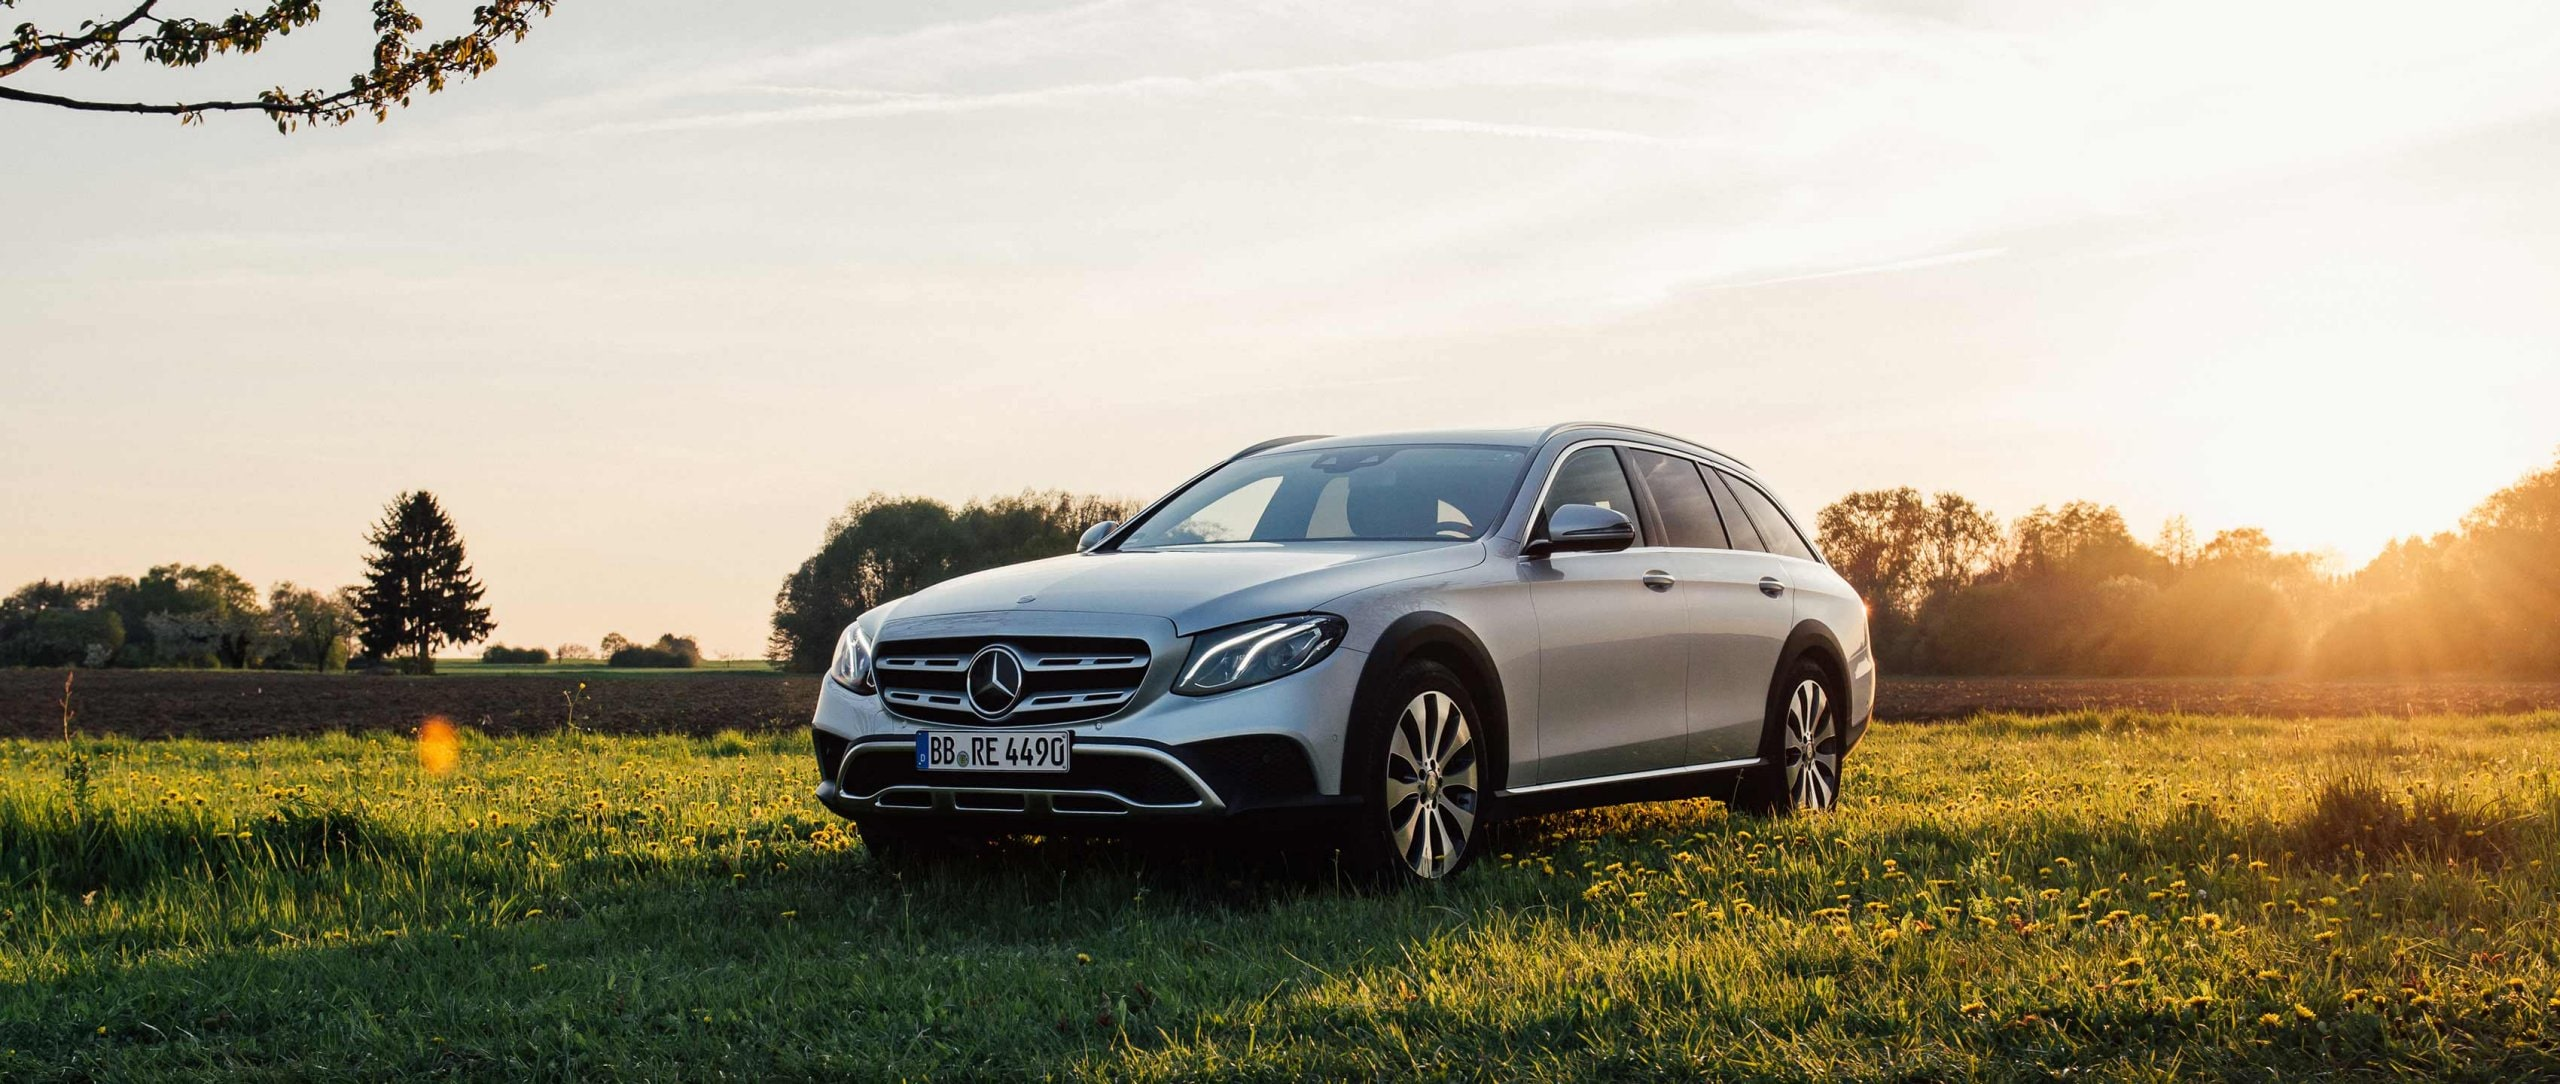 The Mercedes-Benz E-Class All-Terrain (S 213) in the front view on a meadow during a sunset.